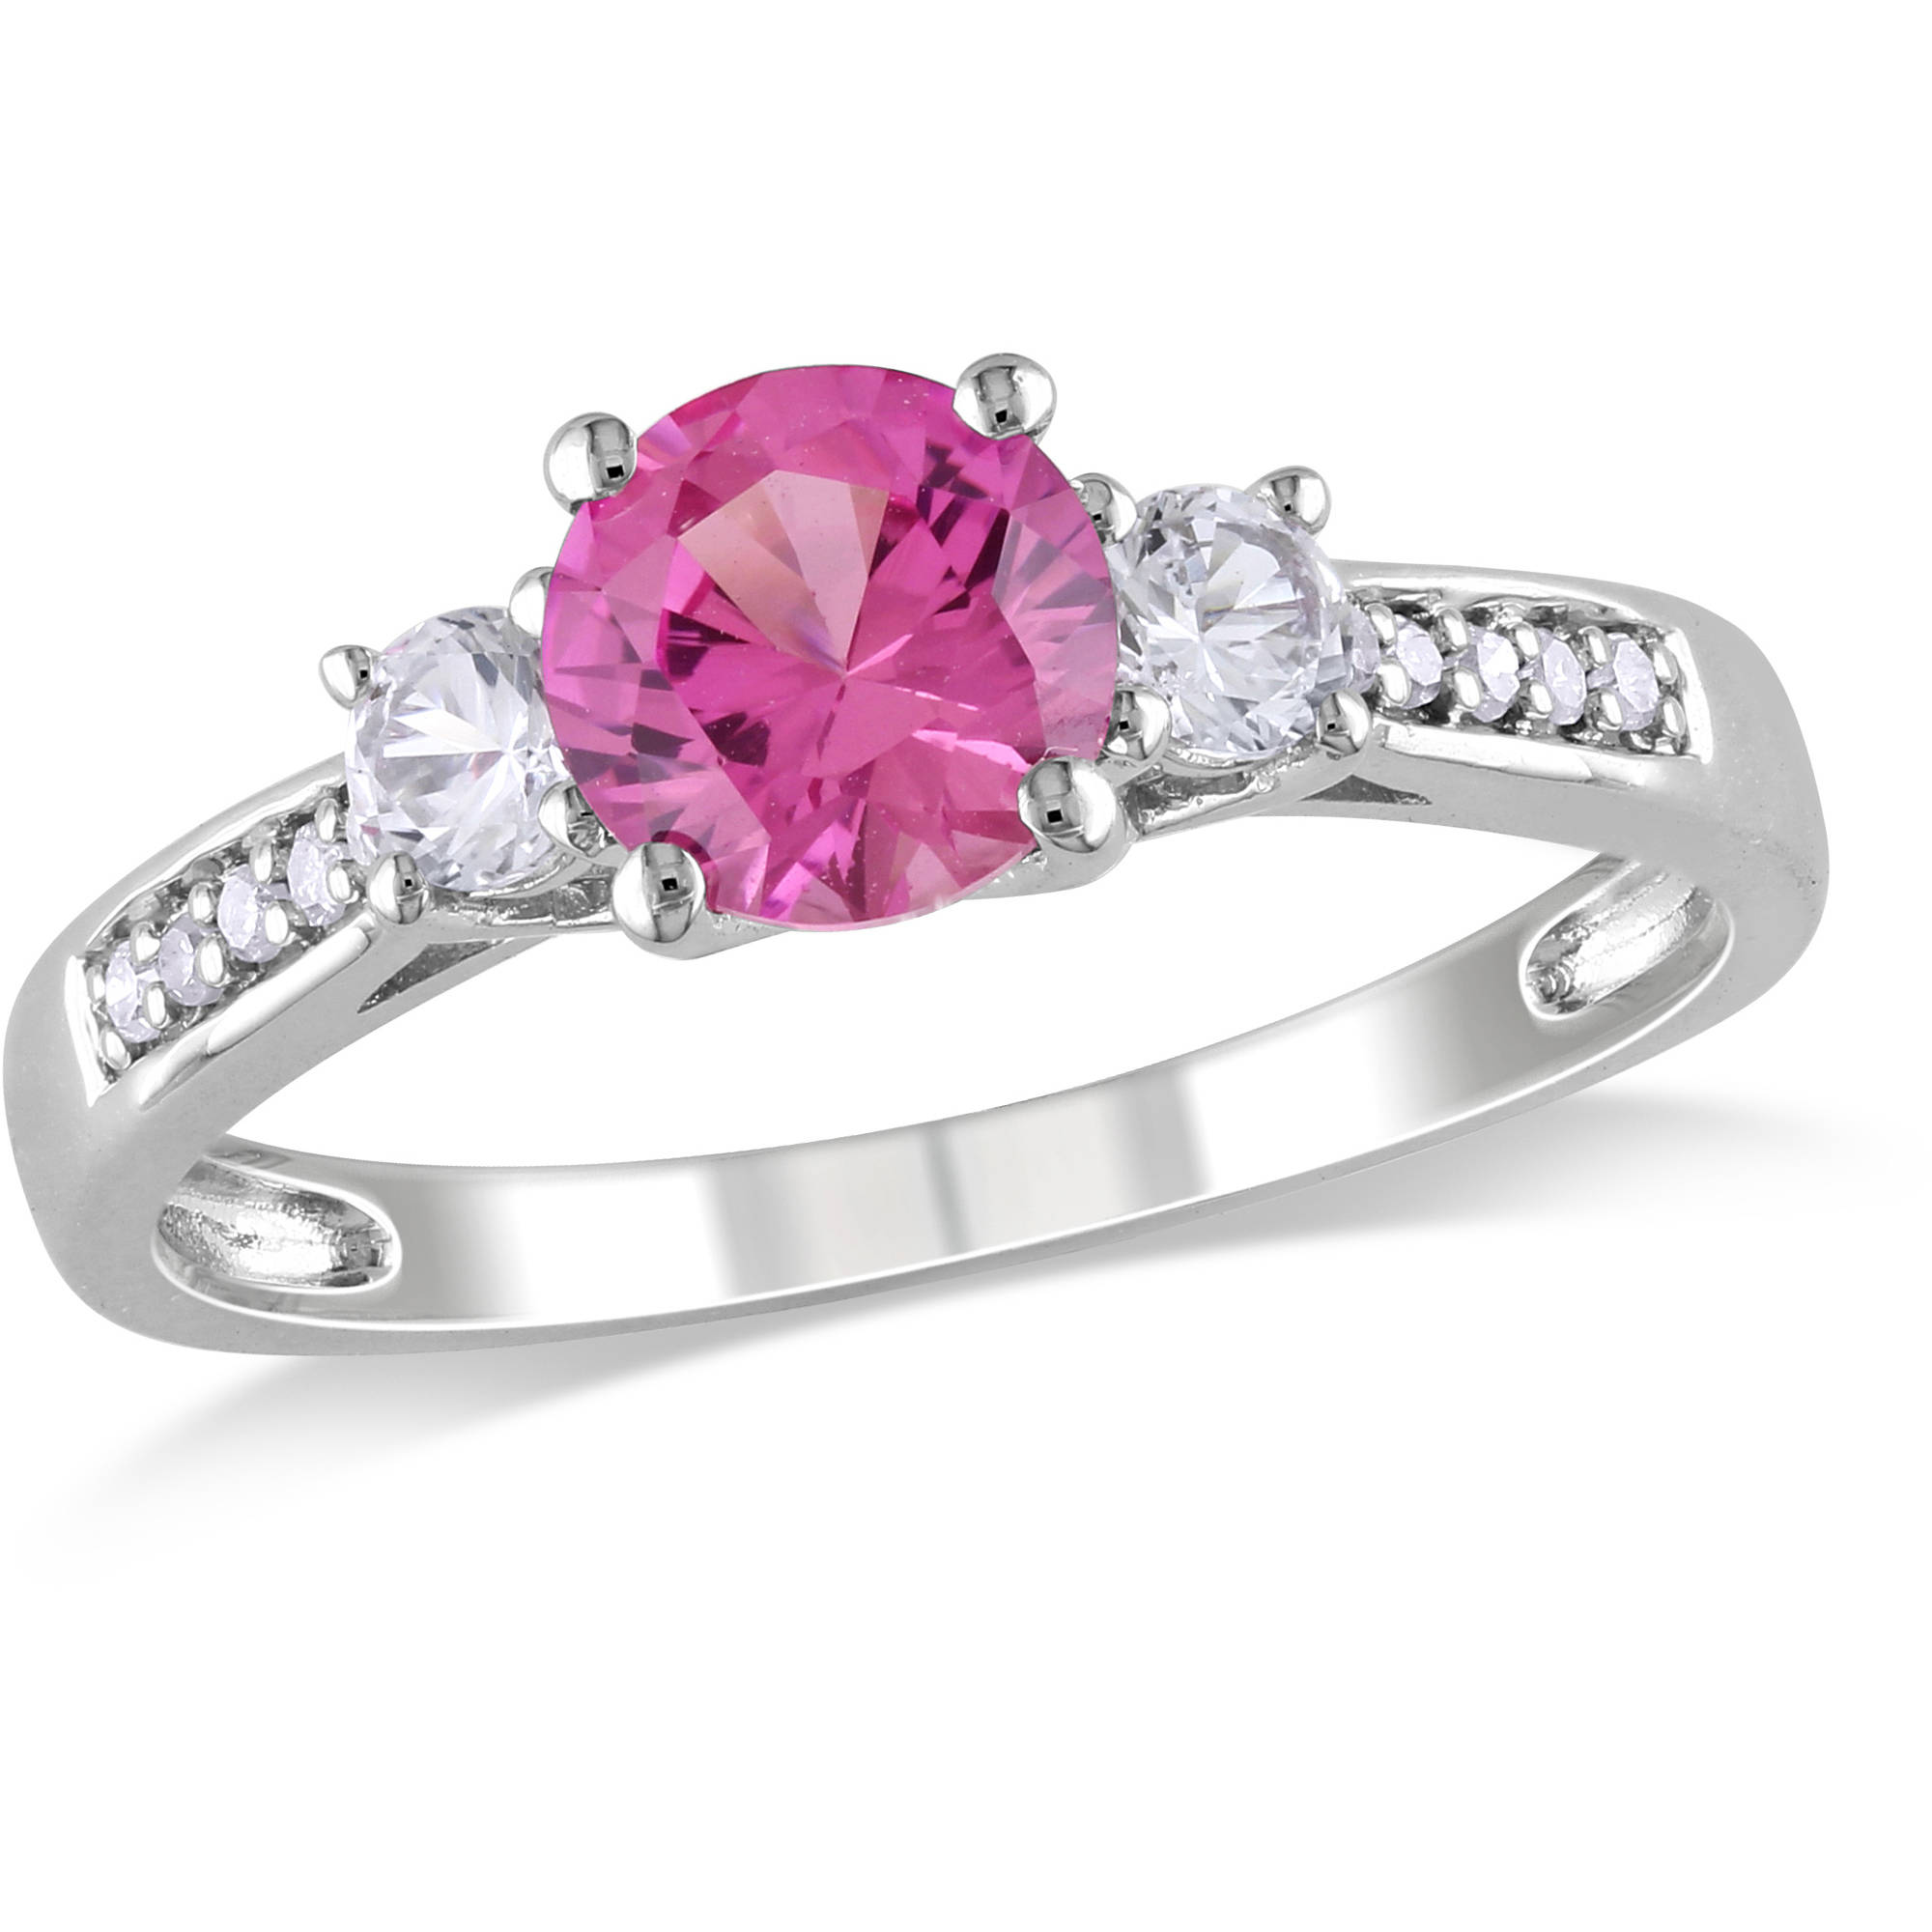 1-3 8 Carat T.G.W. Created Pink and White Sapphire and Diamond-Accent 10kt White Gold 3-Stone Ring by Delmar Manufacturing LLC